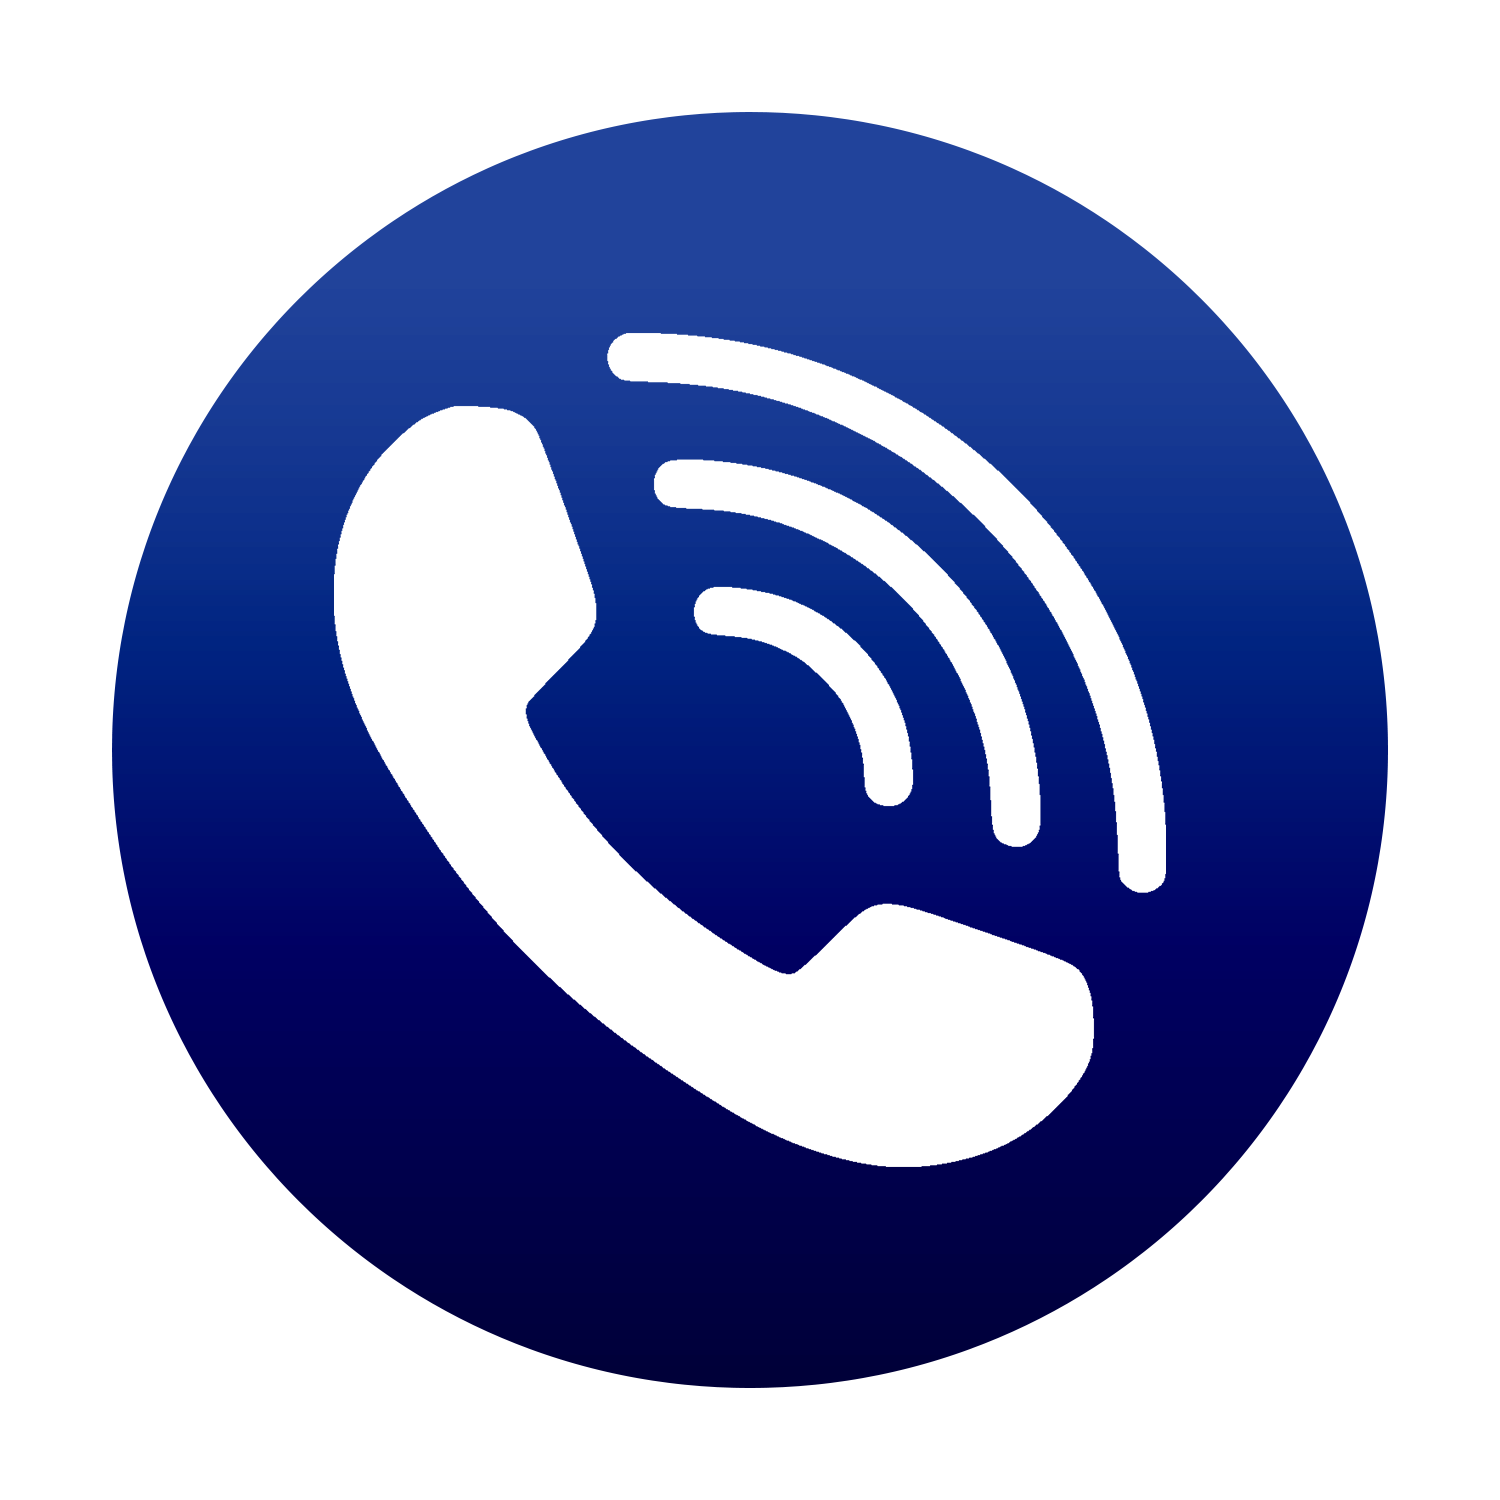 Call Icon for mobile users